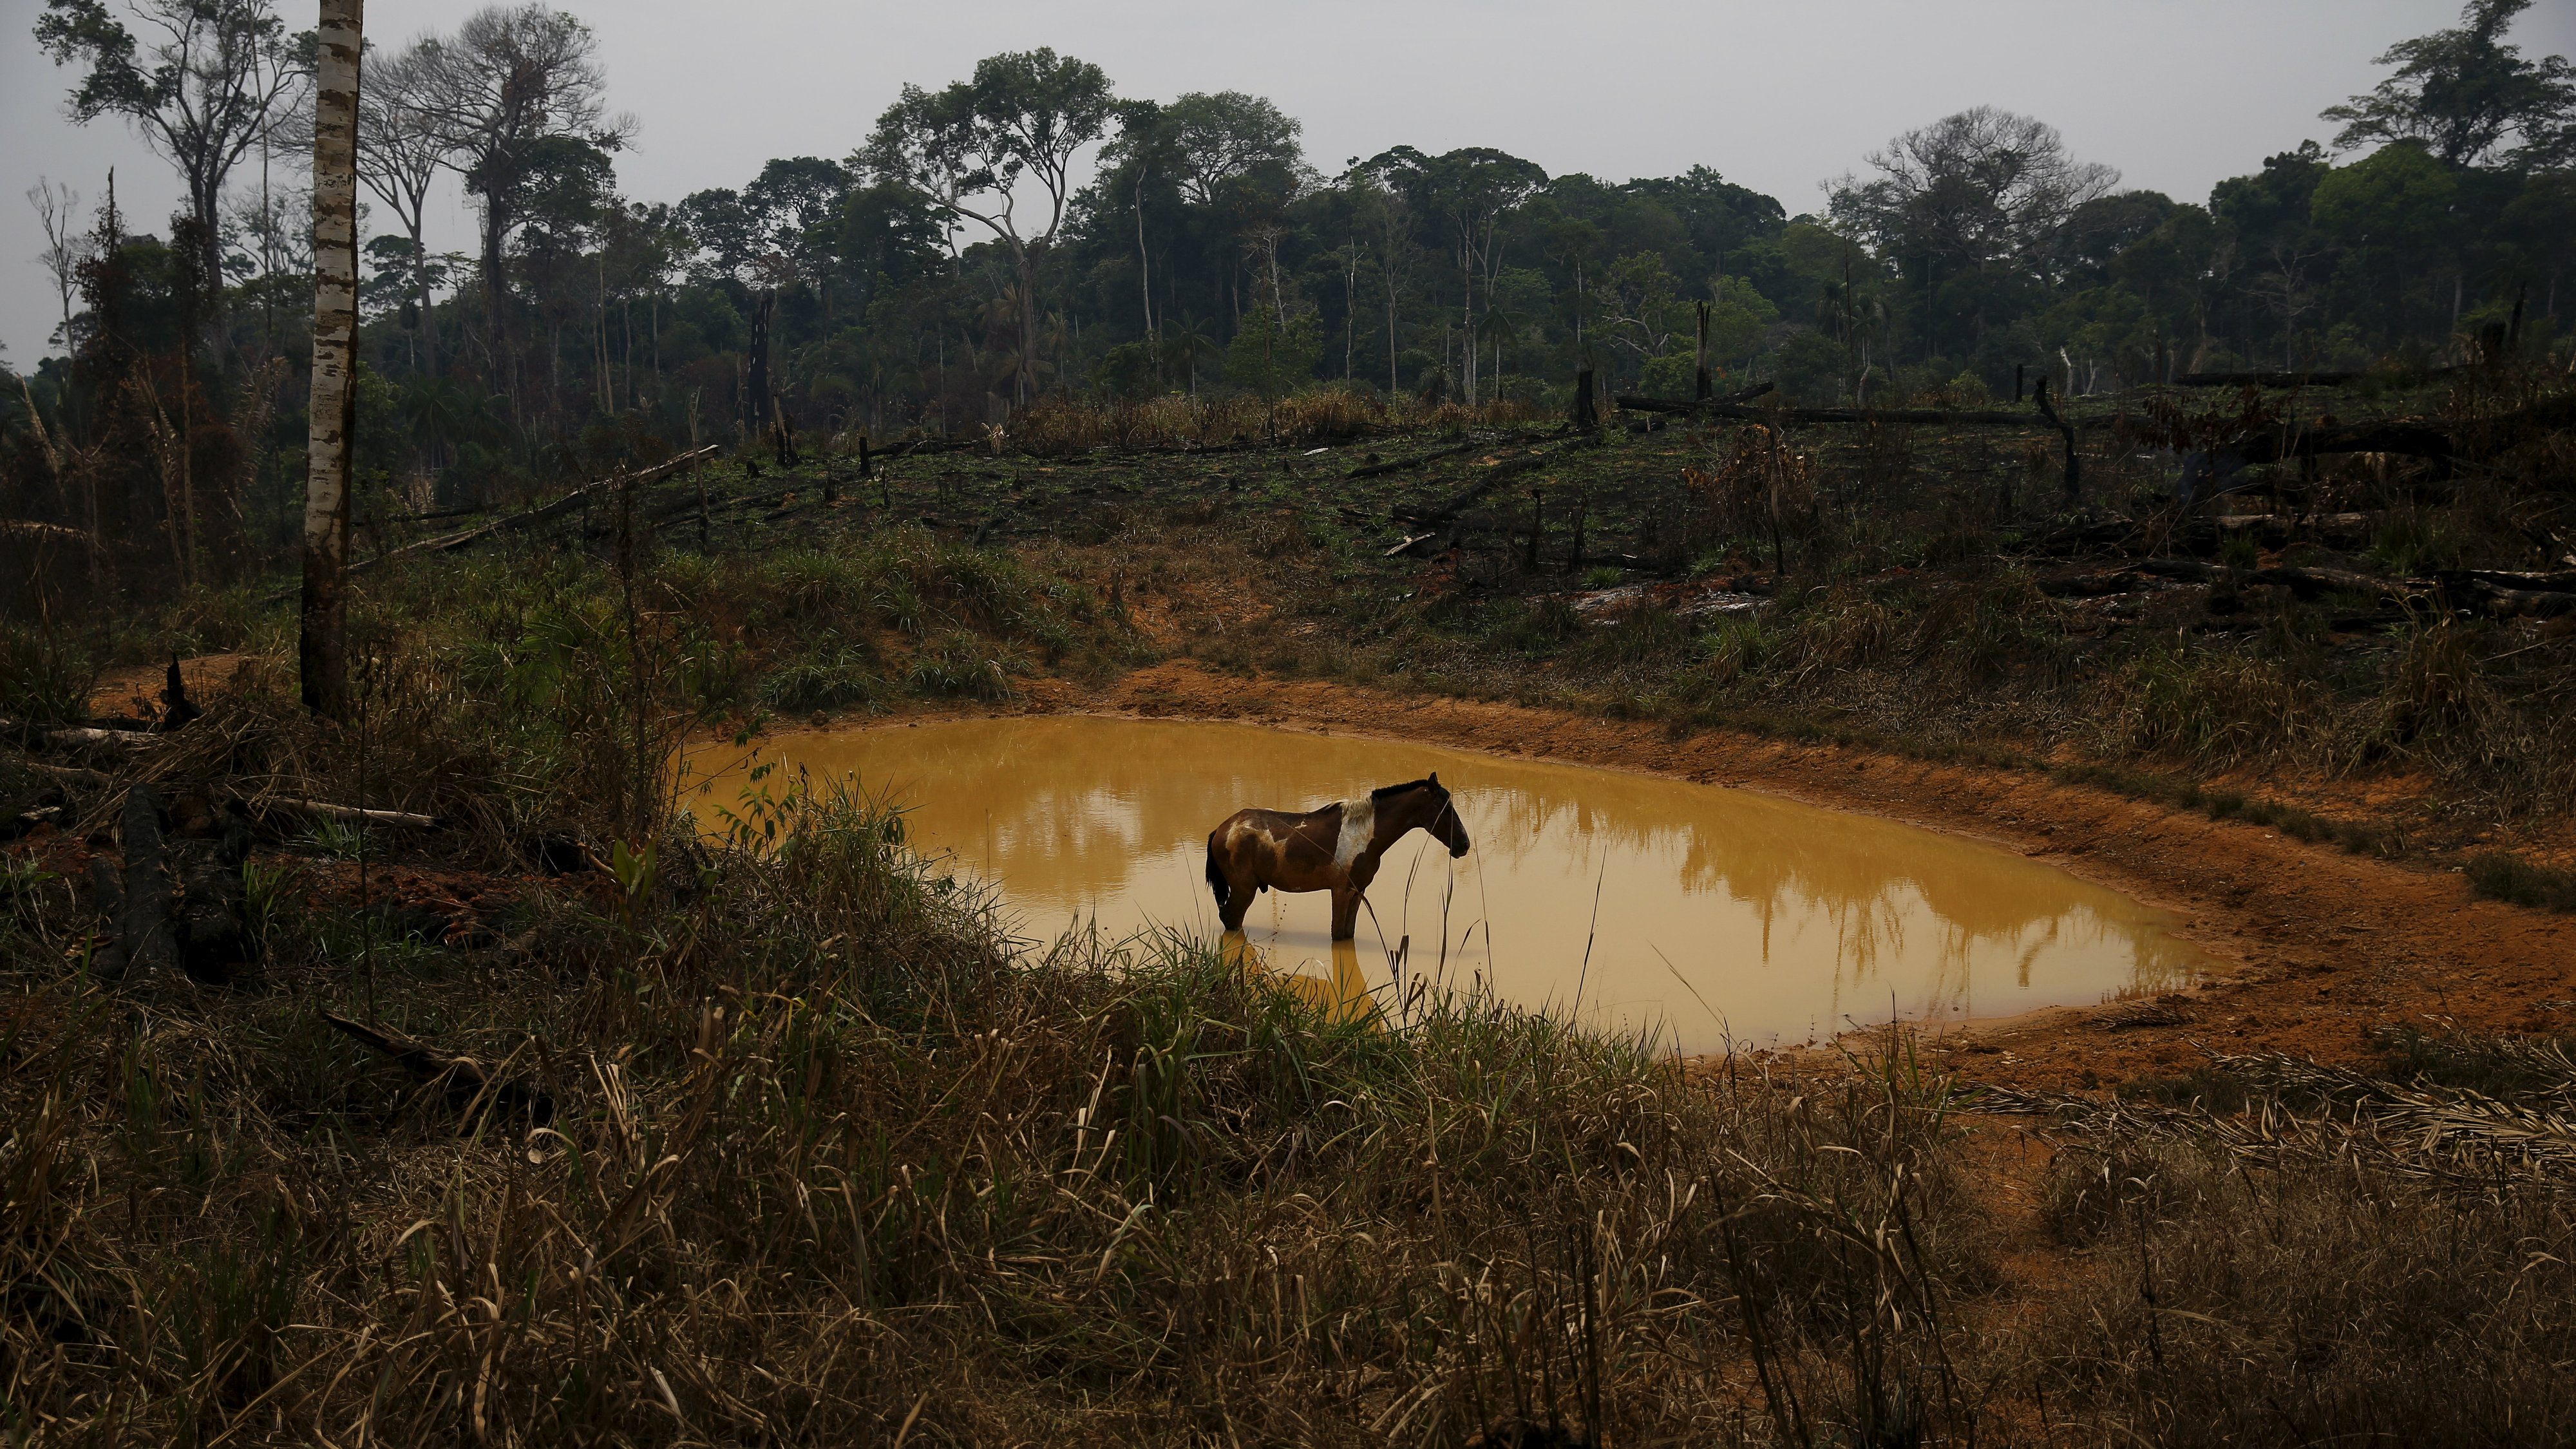 """A horse stands by a lake in Rio Pardo next to Bom Futuro National Forest, in the district of Porto Velho, Rondonia State, Brazil, September 1, 2015. The town of Rio Pardo, a settlement of about 4,000 people in the Amazon rainforest, rises where only jungle stood less than a quarter of a century ago. Loggers first cleared the forest followed by ranchers and farmers, then small merchants and prospectors. Brazil's government has stated a goal of eliminating illegal deforestation, but enforcing the law in remote corners like Rio Pardo is far from easy. REUTERS/Nacho DocePICTURE 37 OF 40 FOR WIDER IMAGE STORY """"EARTHPRINTS: RIO PARDO"""" SEARCH """"EARTHPRINTS PARDO"""" FOR ALL IMAGES"""